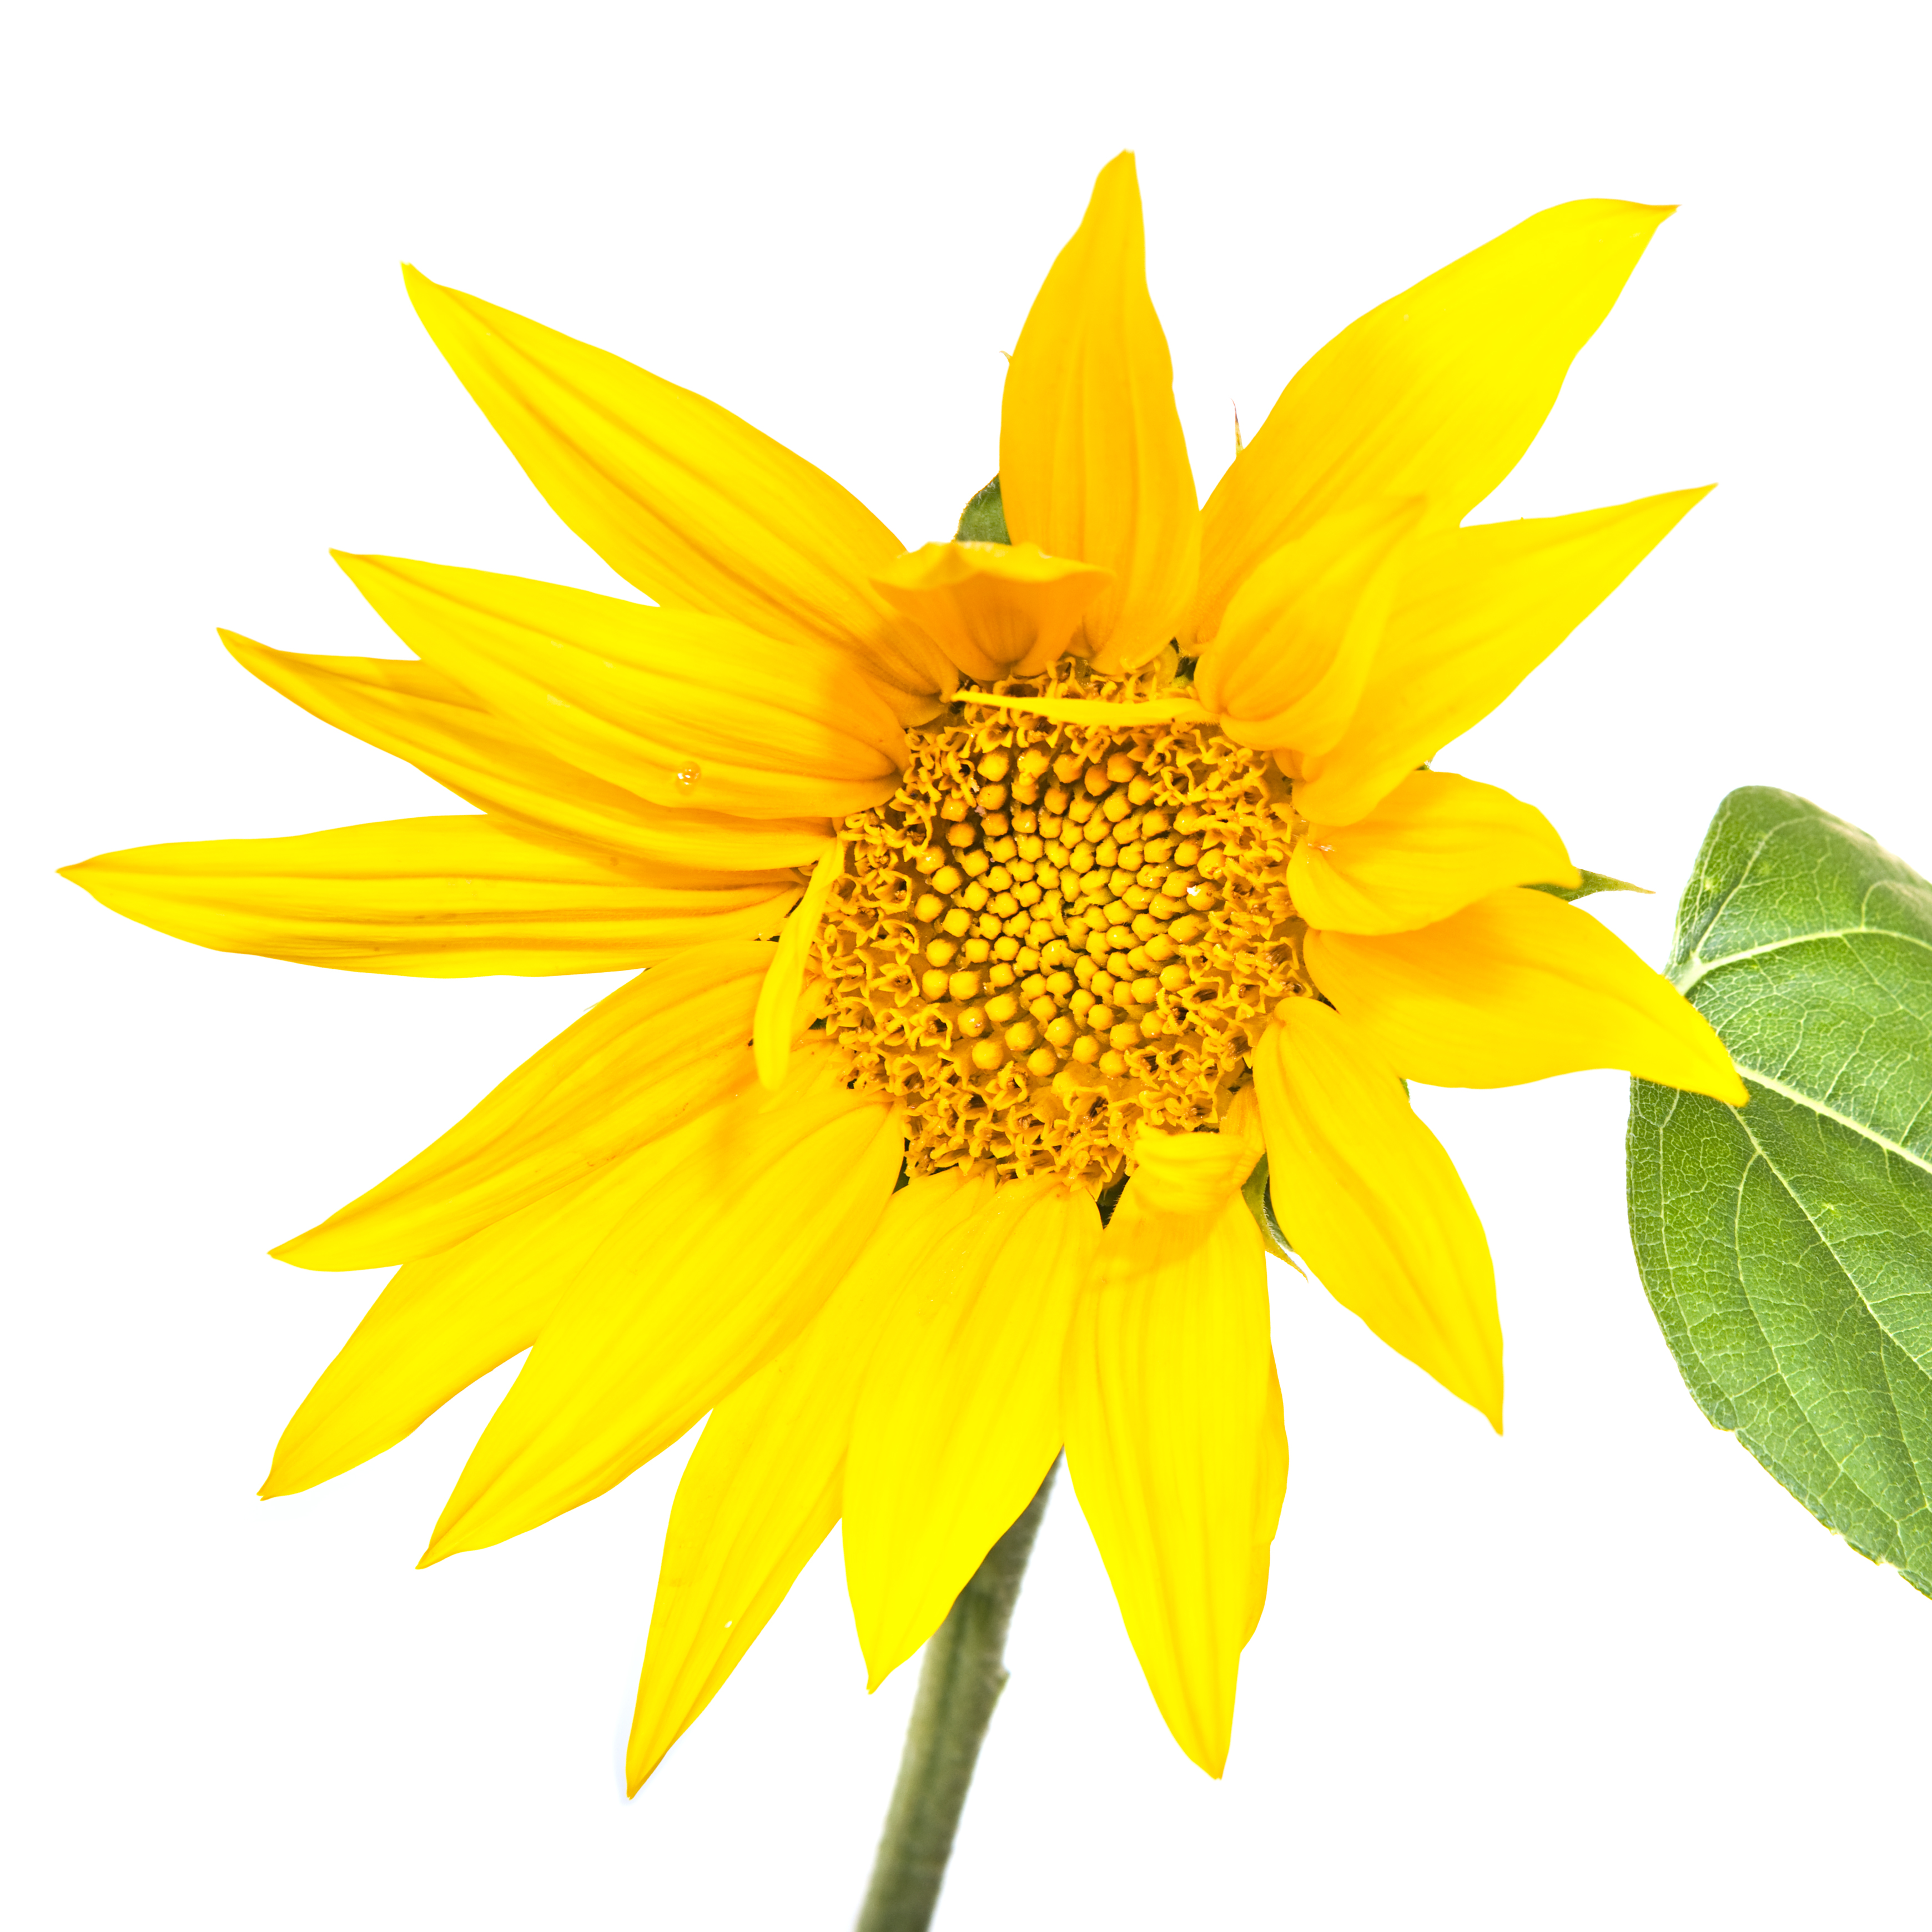 Sunflower isolated on white, Agriculture, Plant, Macro, Natural, HQ Photo